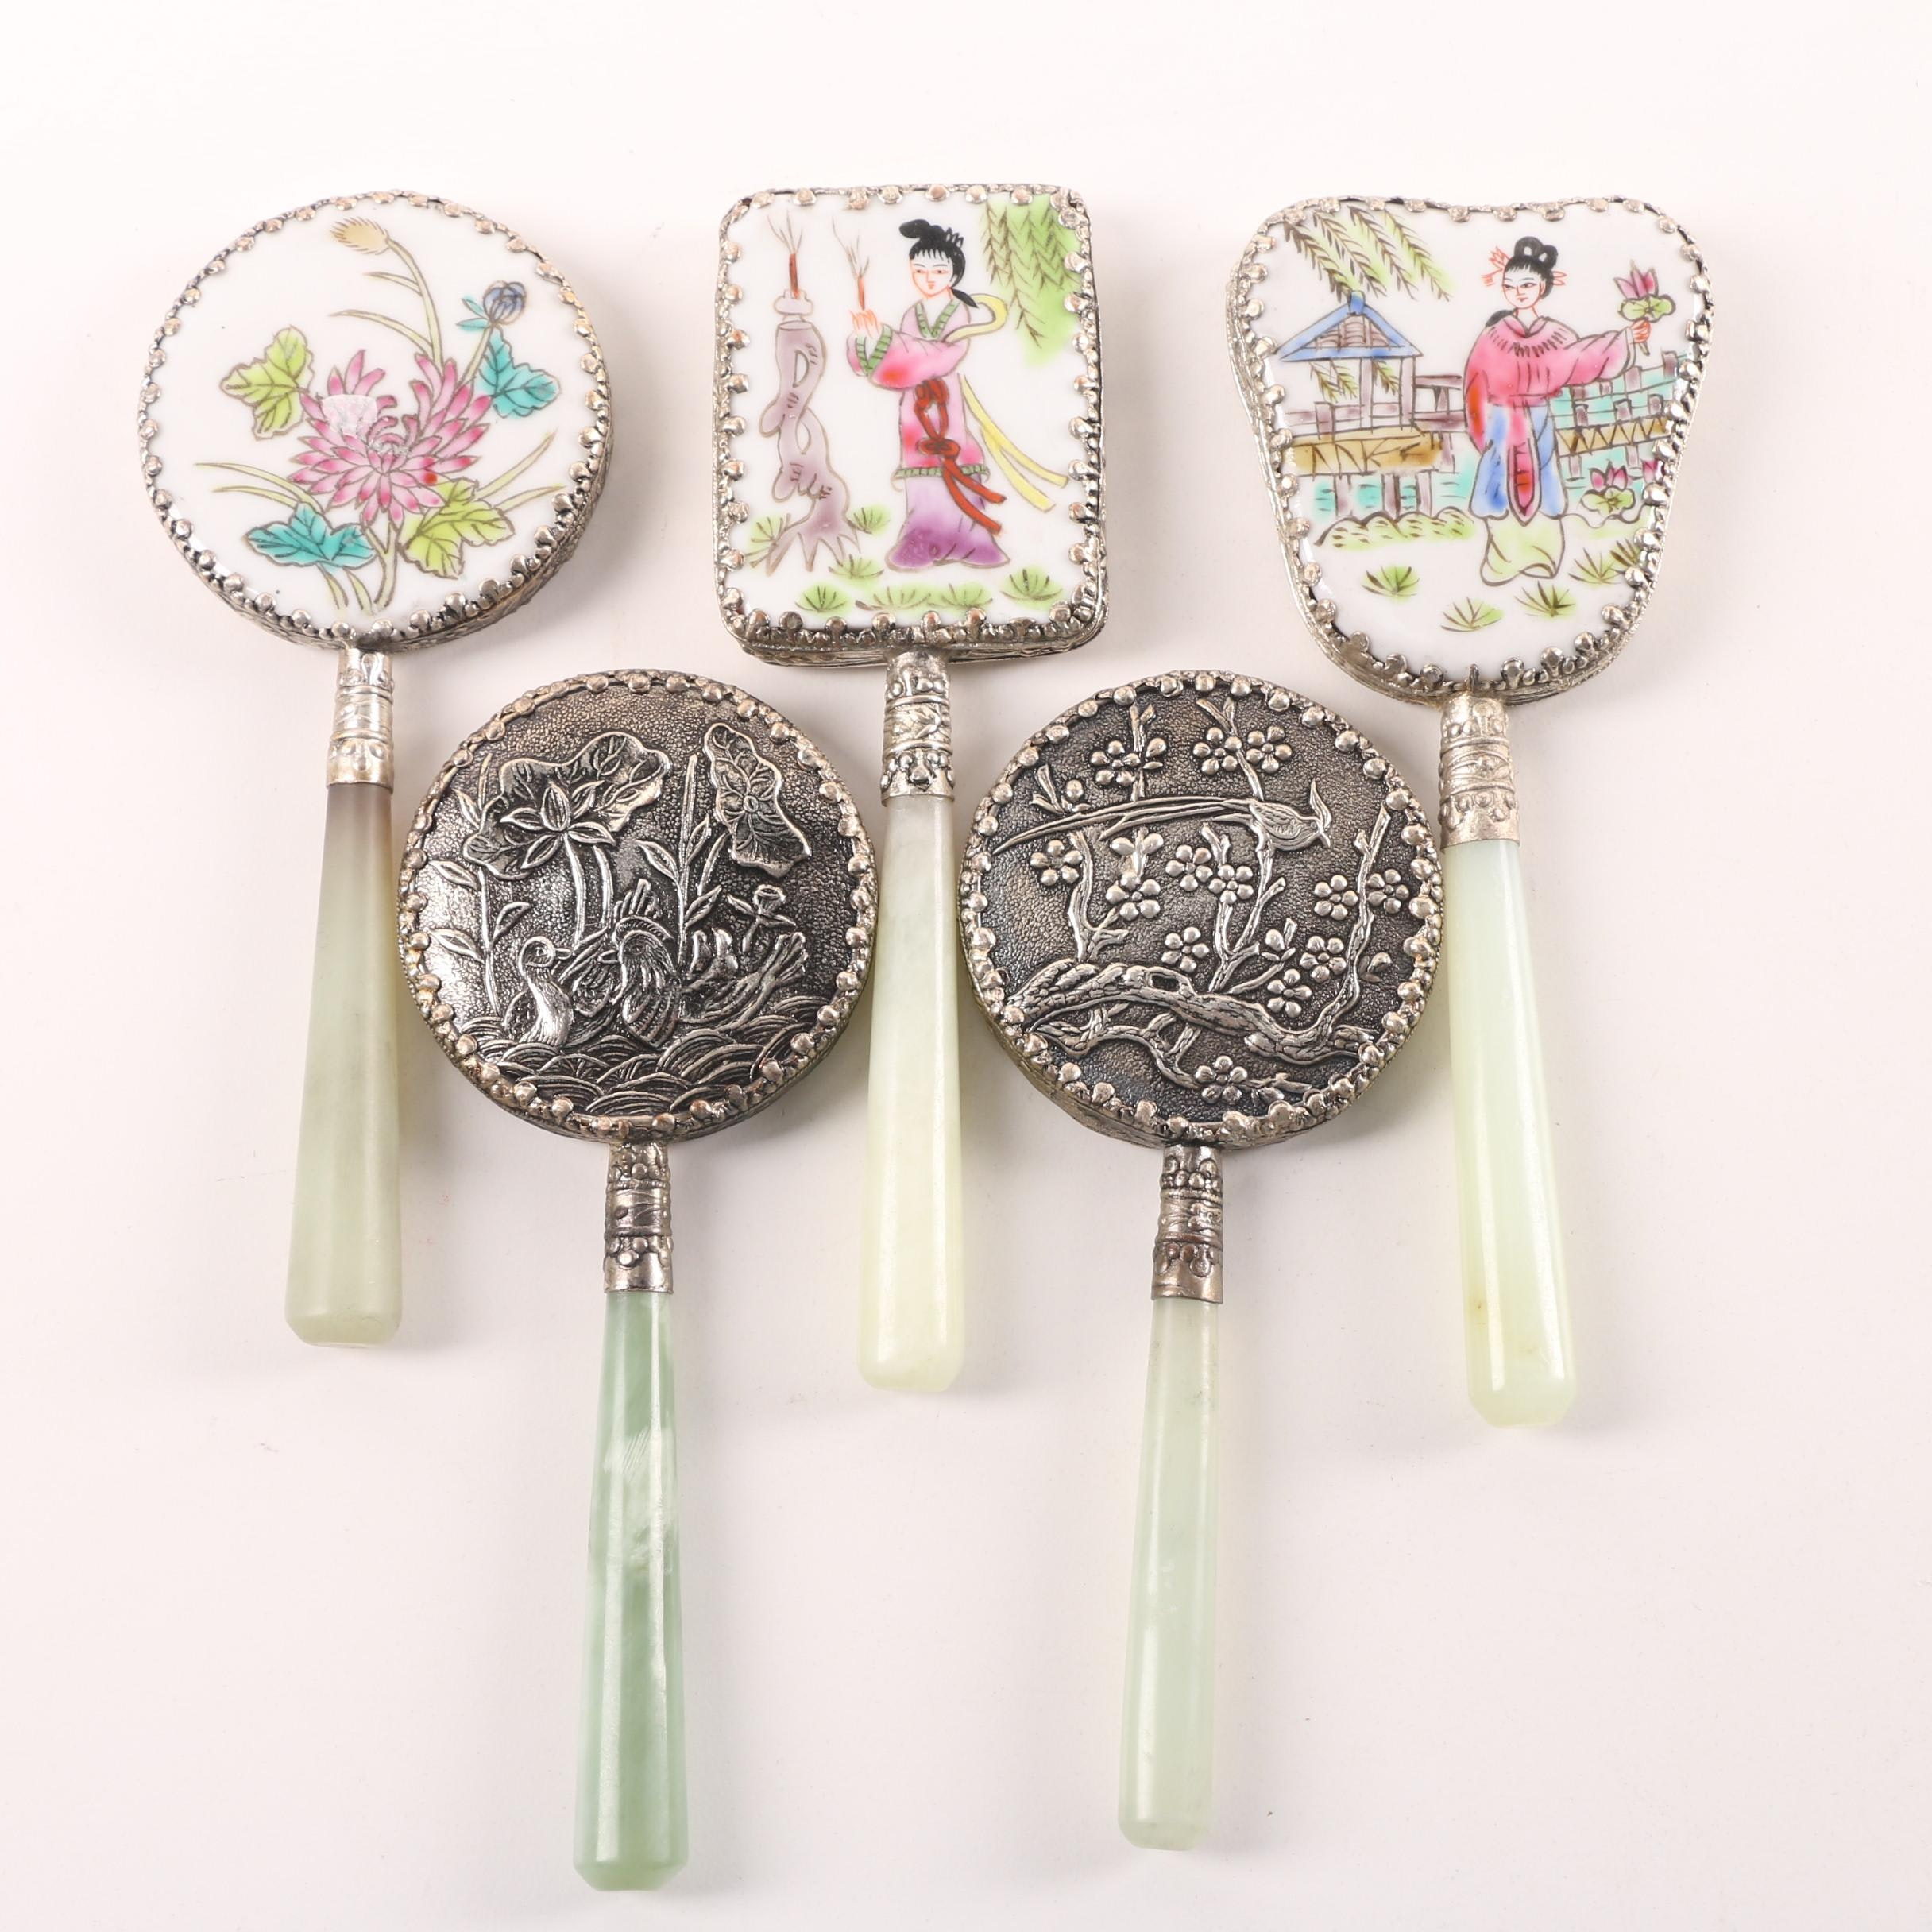 Chinese Hand-Painted and Embossed Mirrors with Bowenite Handles